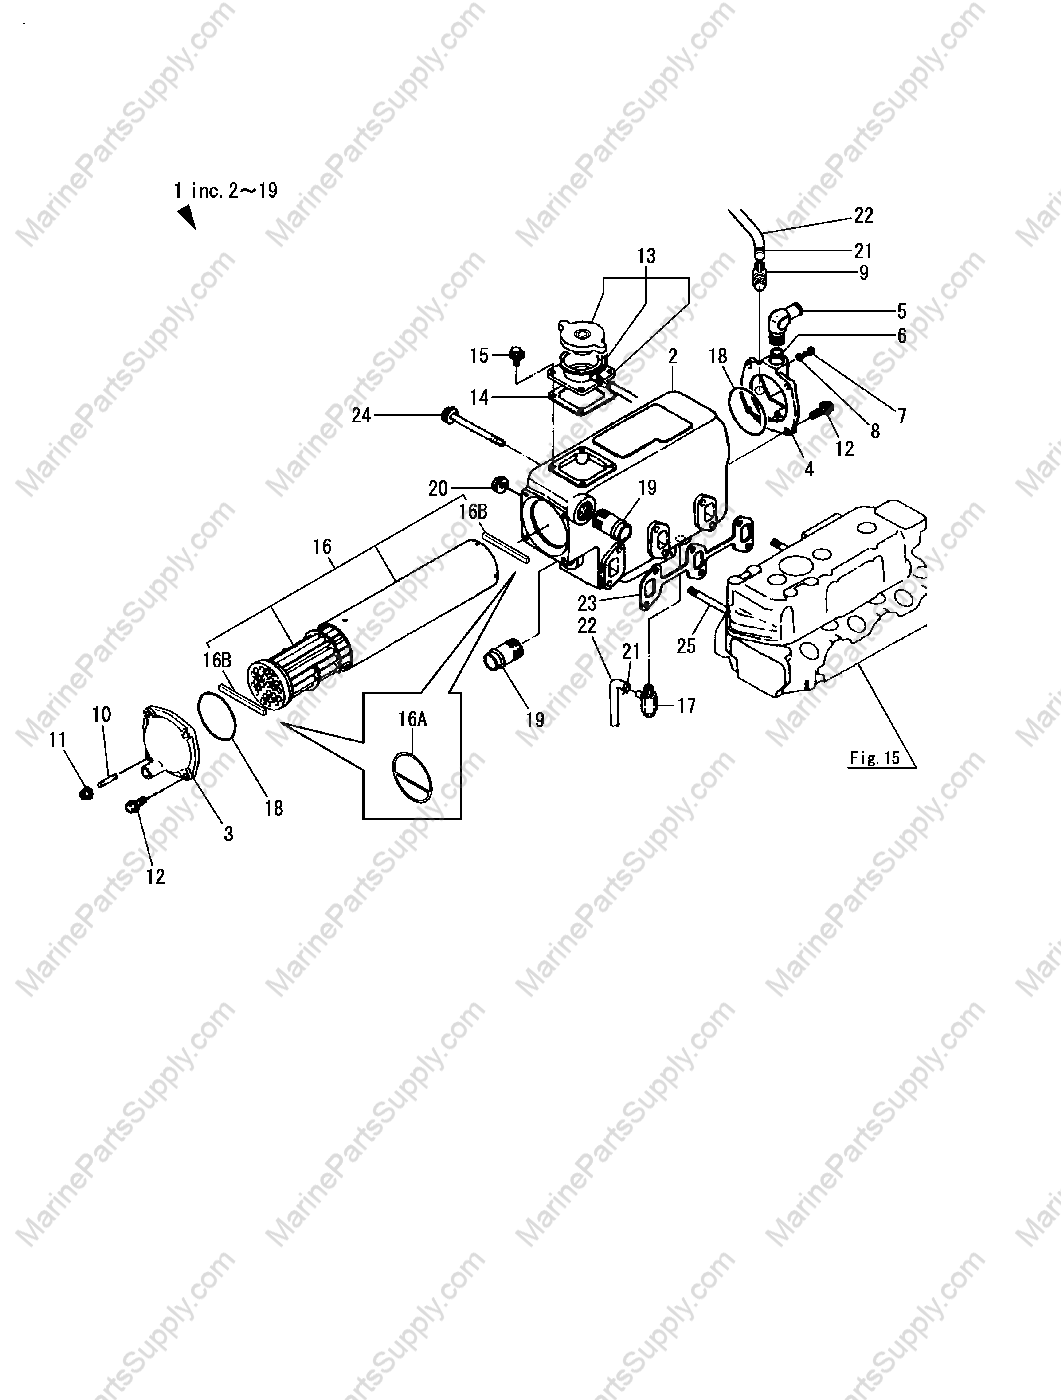 Mins Sel Engines Diagram Mins Auto Engine And Parts